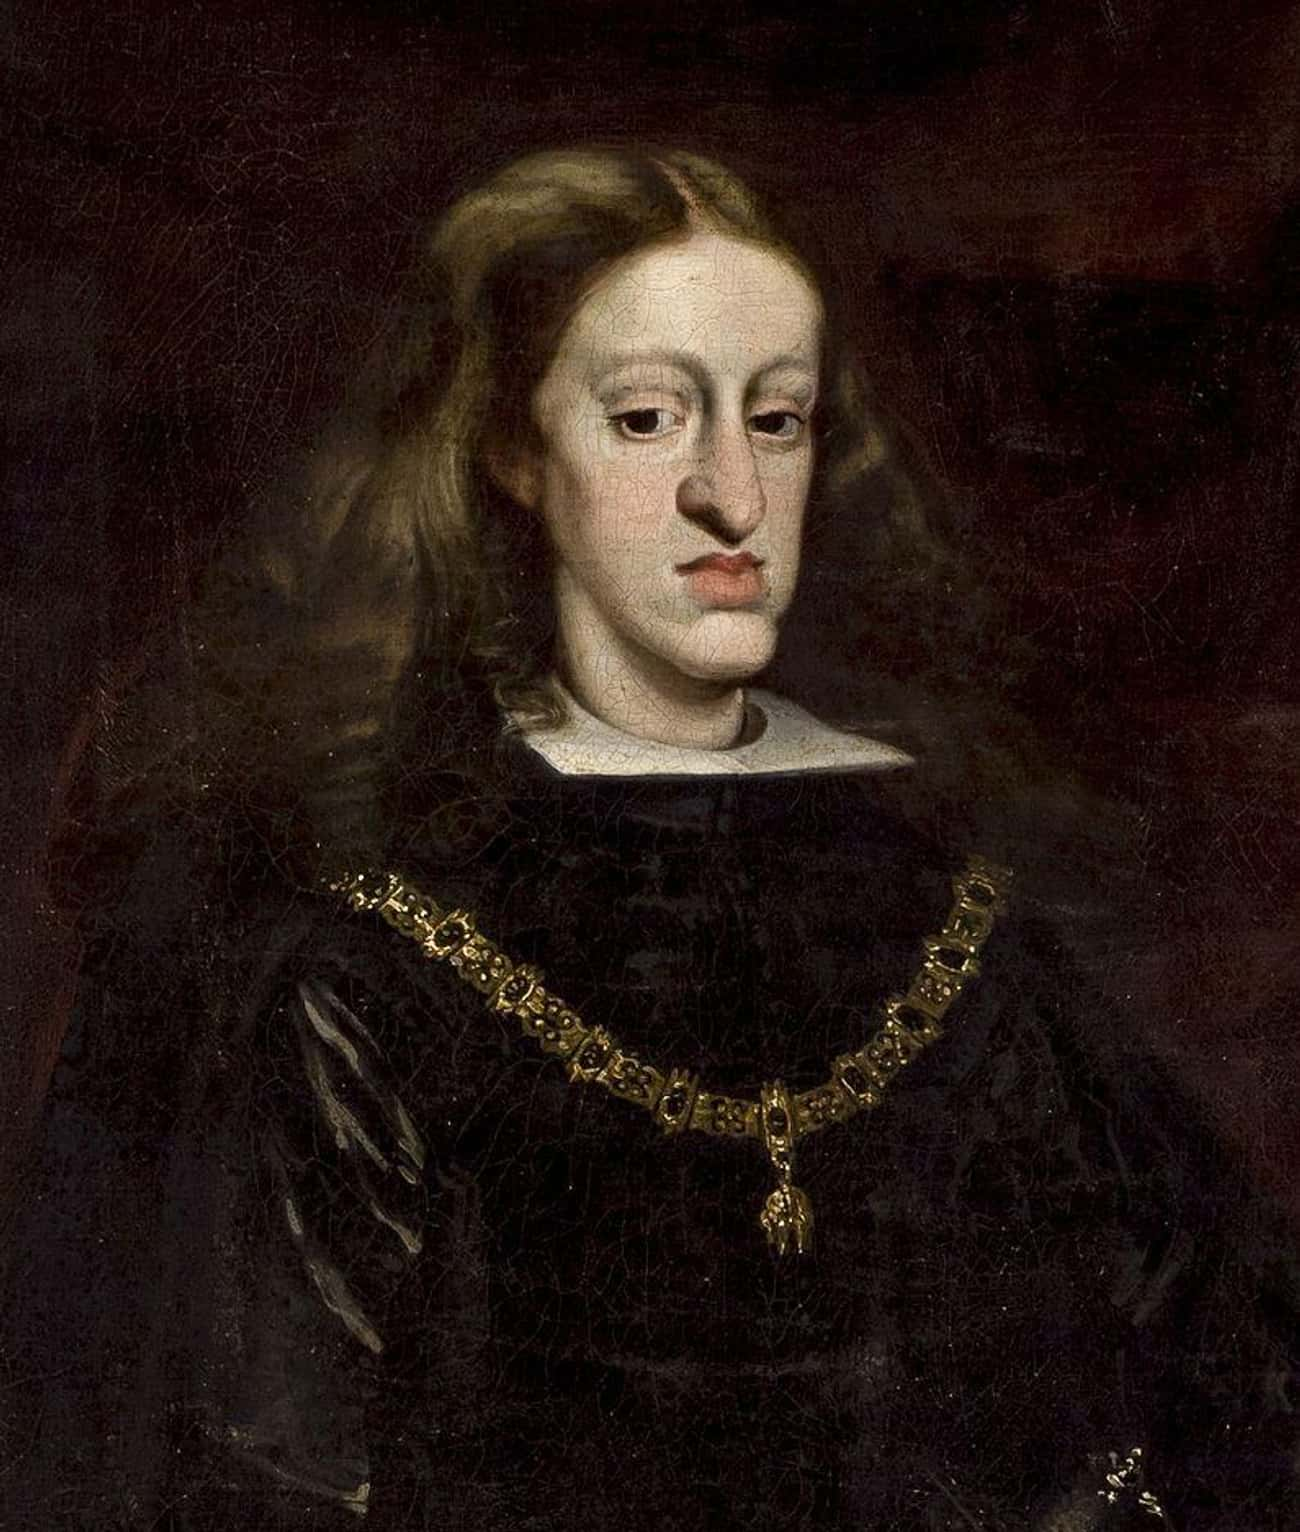 Most Of Charles's Health Issues Were Caused By Genetic Disorders